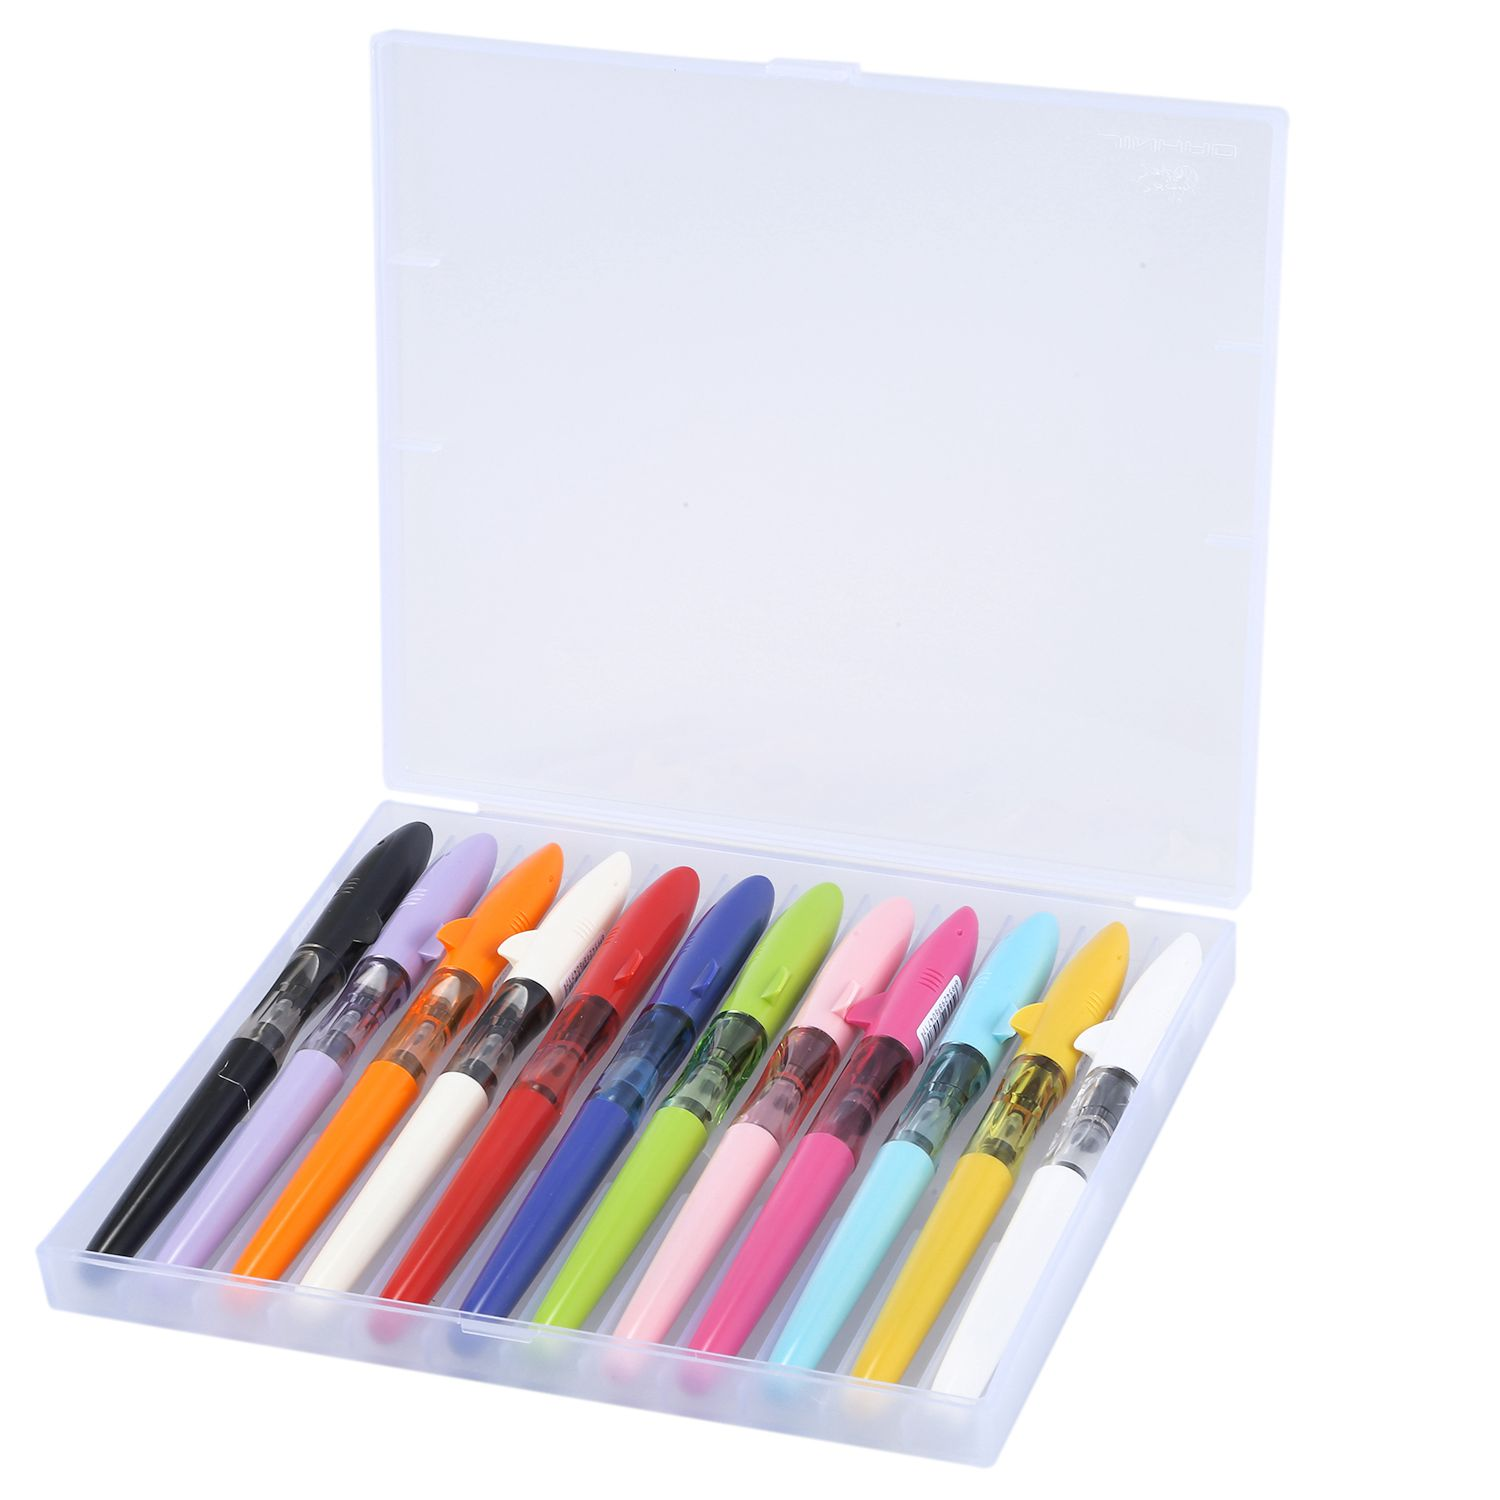 Hot sale 12pcs/box JINHAO SHARK Series Fountain Pen Candy Color Kawaii Shark Cover Student Practise Ink Pen with A Box hot sale 1000ml roland mimaki mutoh textile pigment ink in bottle color lc for sale